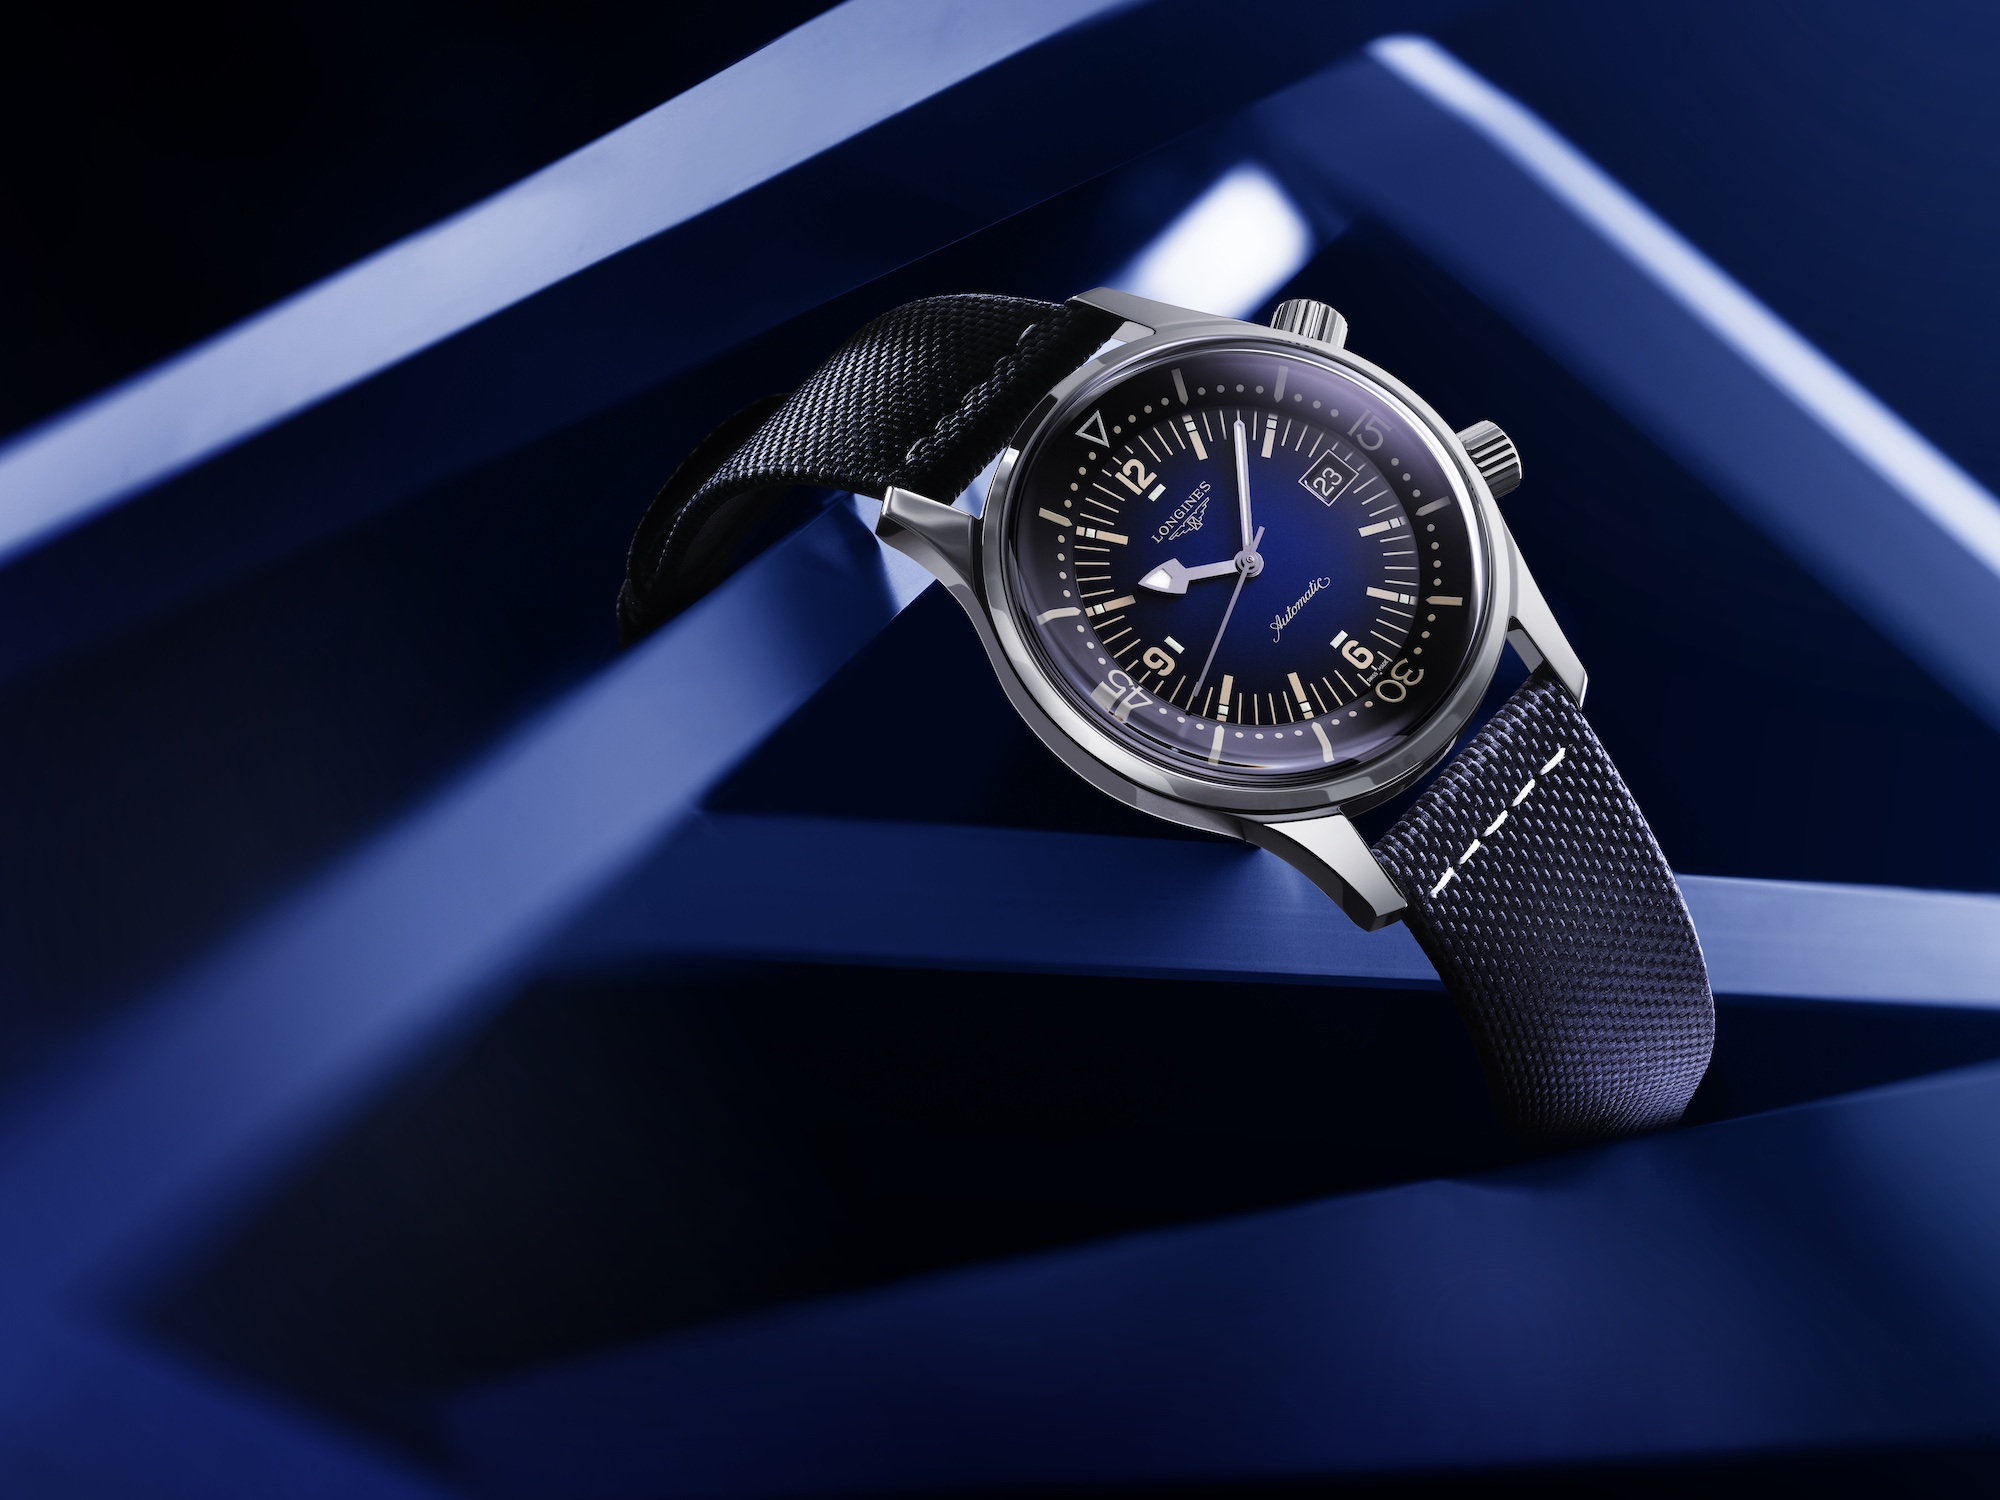 The Longines Legend Diver Watch Azul L3.774.4.90.2 Lifestyle